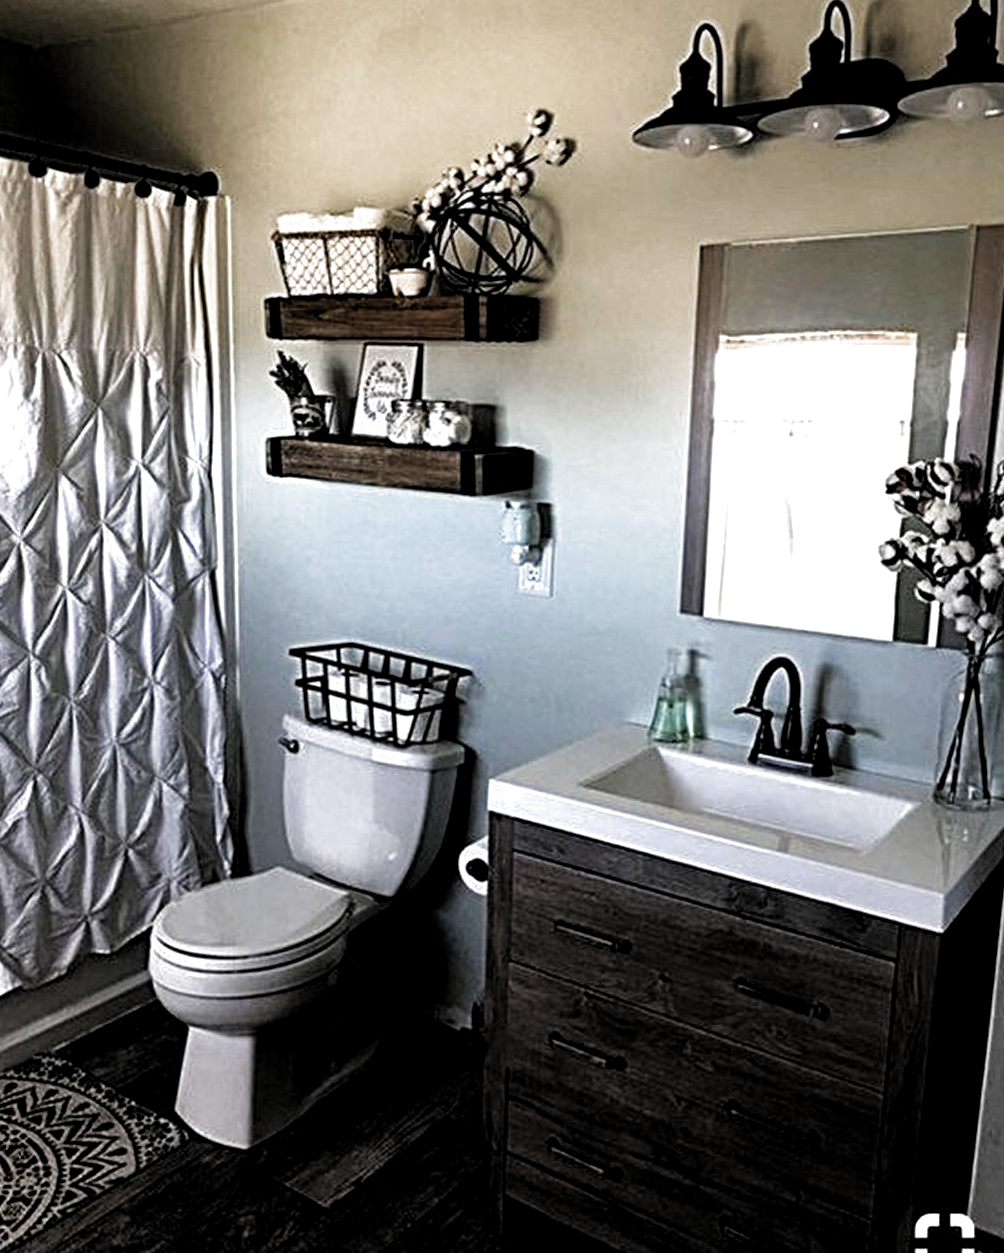 Bathroom Remodel Bathroom Remodel before and after Bathroom Remodel diy Bathroom Remodel farmhouse B #remodelideas